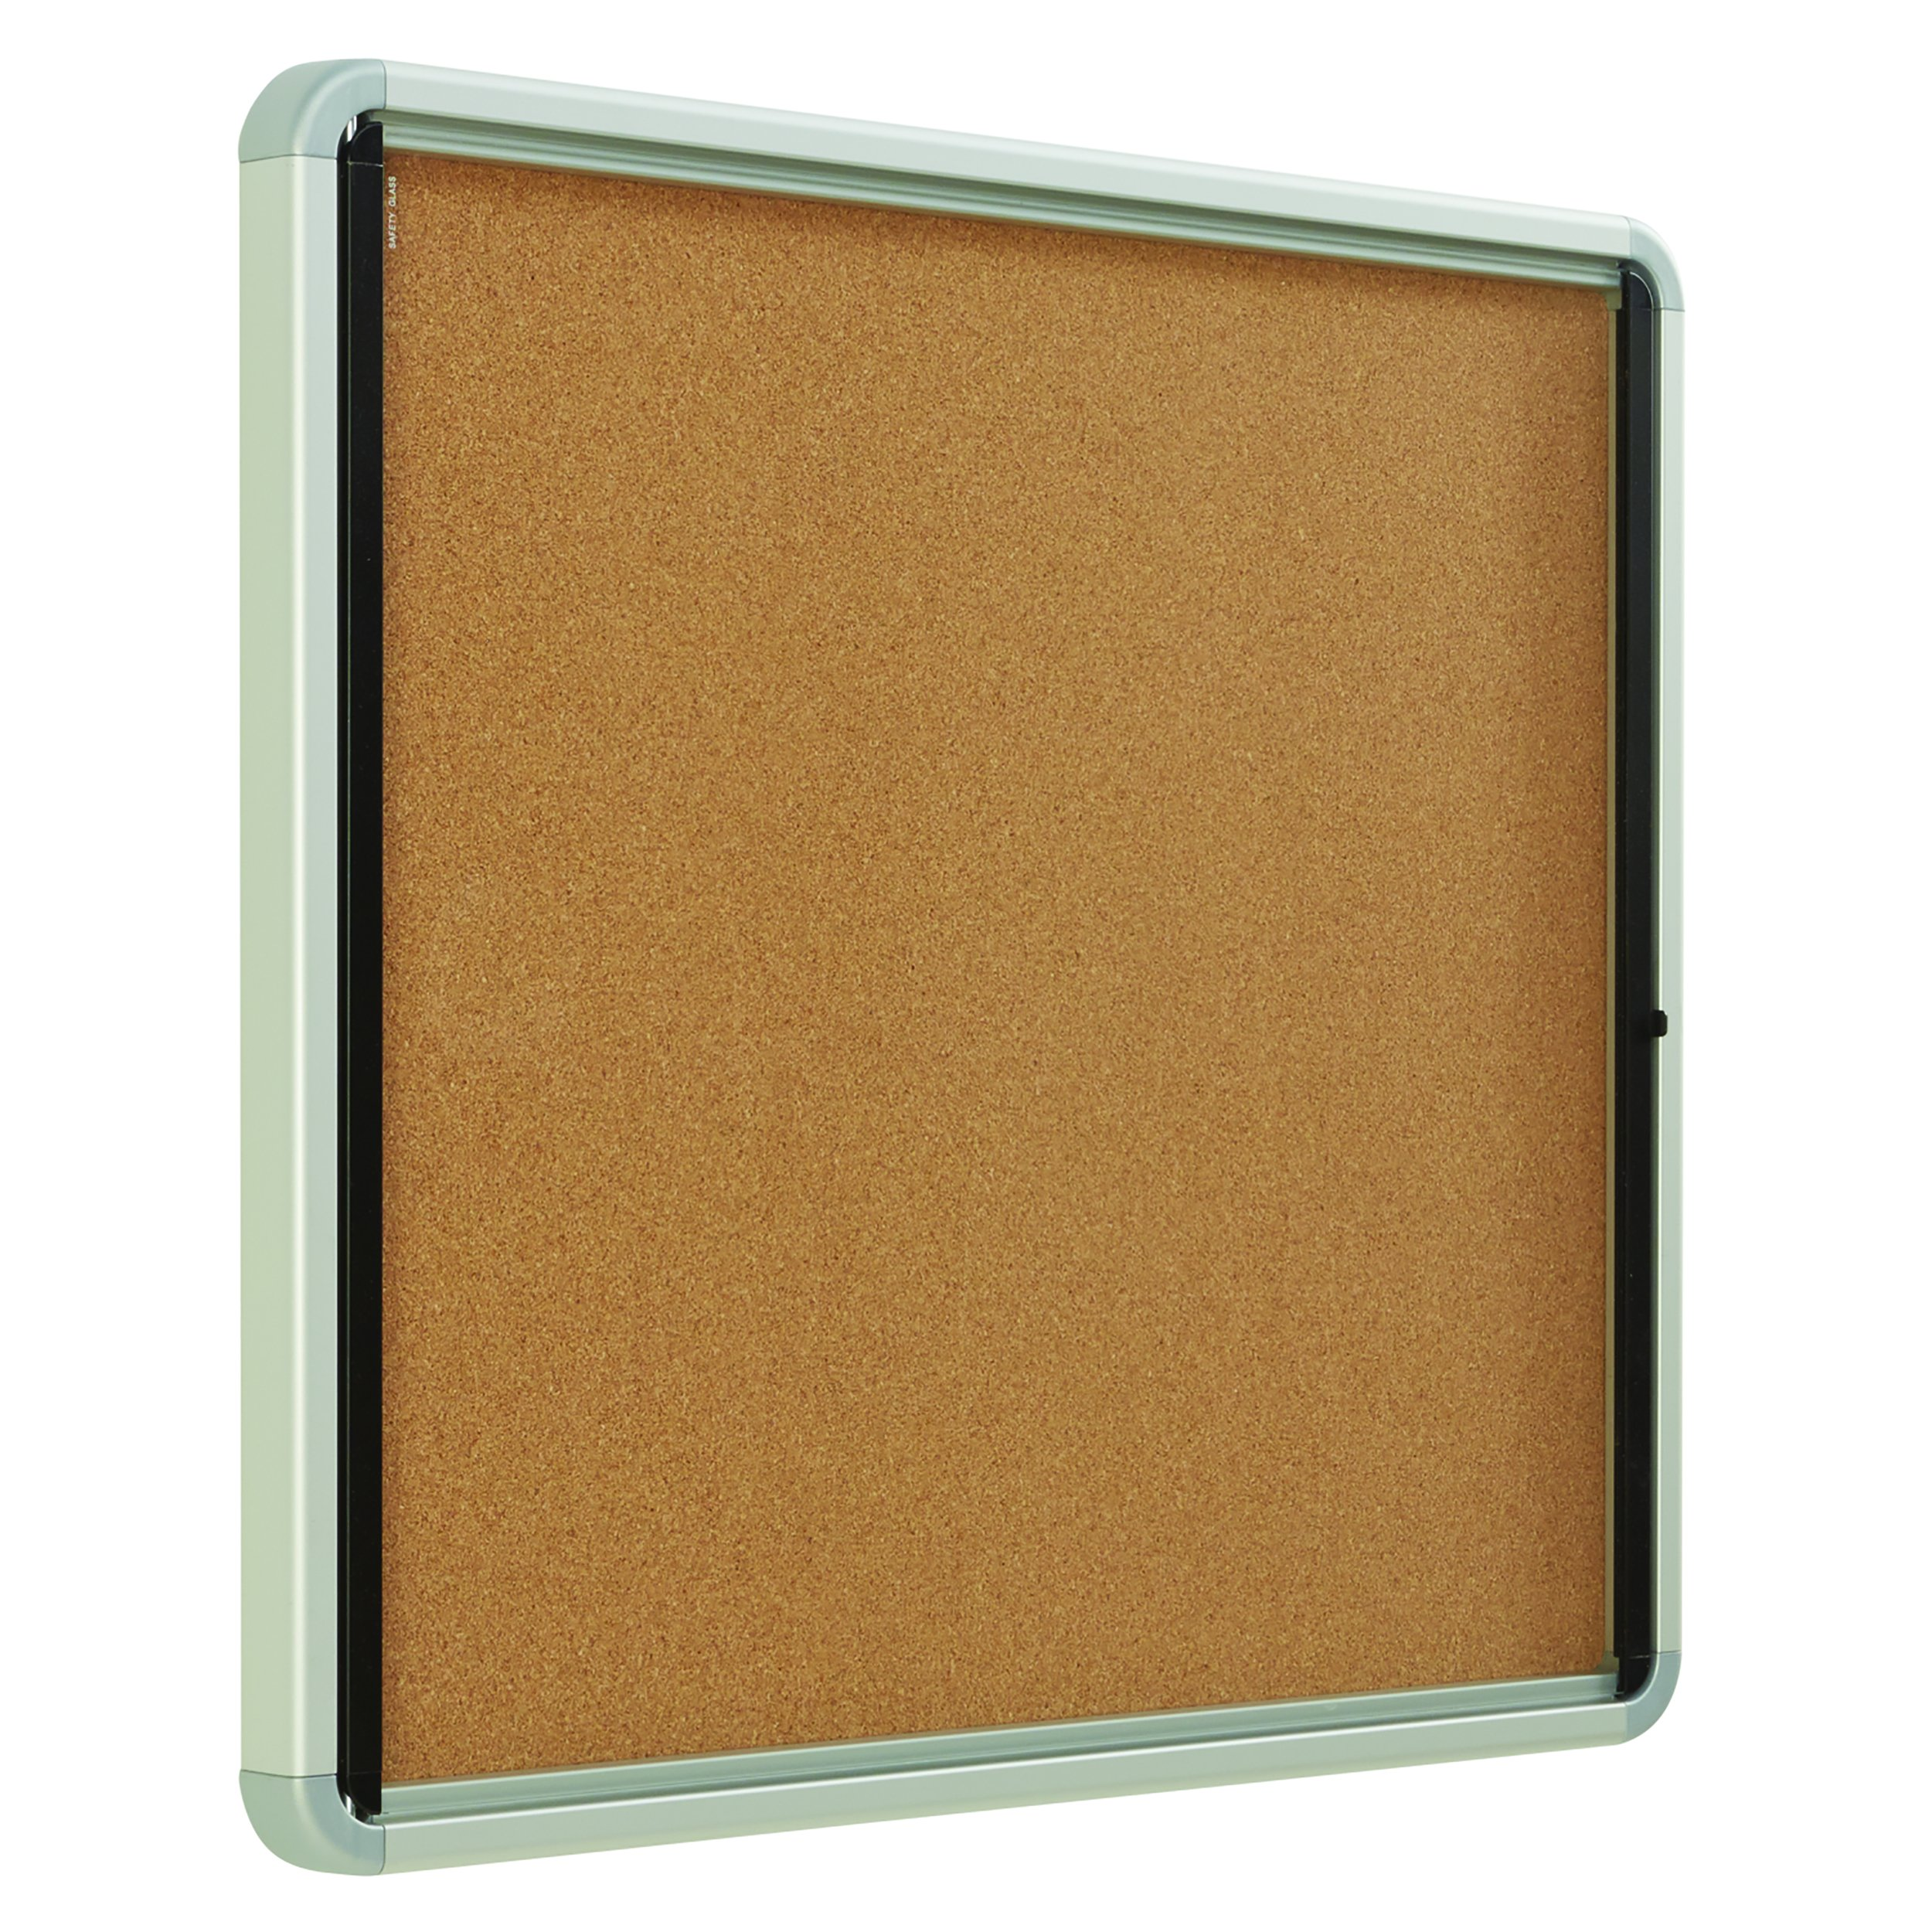 Quartet Enclosed Cork Bulletin Board, 30'' x 27'' or 6 Sheets, Swing Door, Aluminum Frame (EIHC2730)